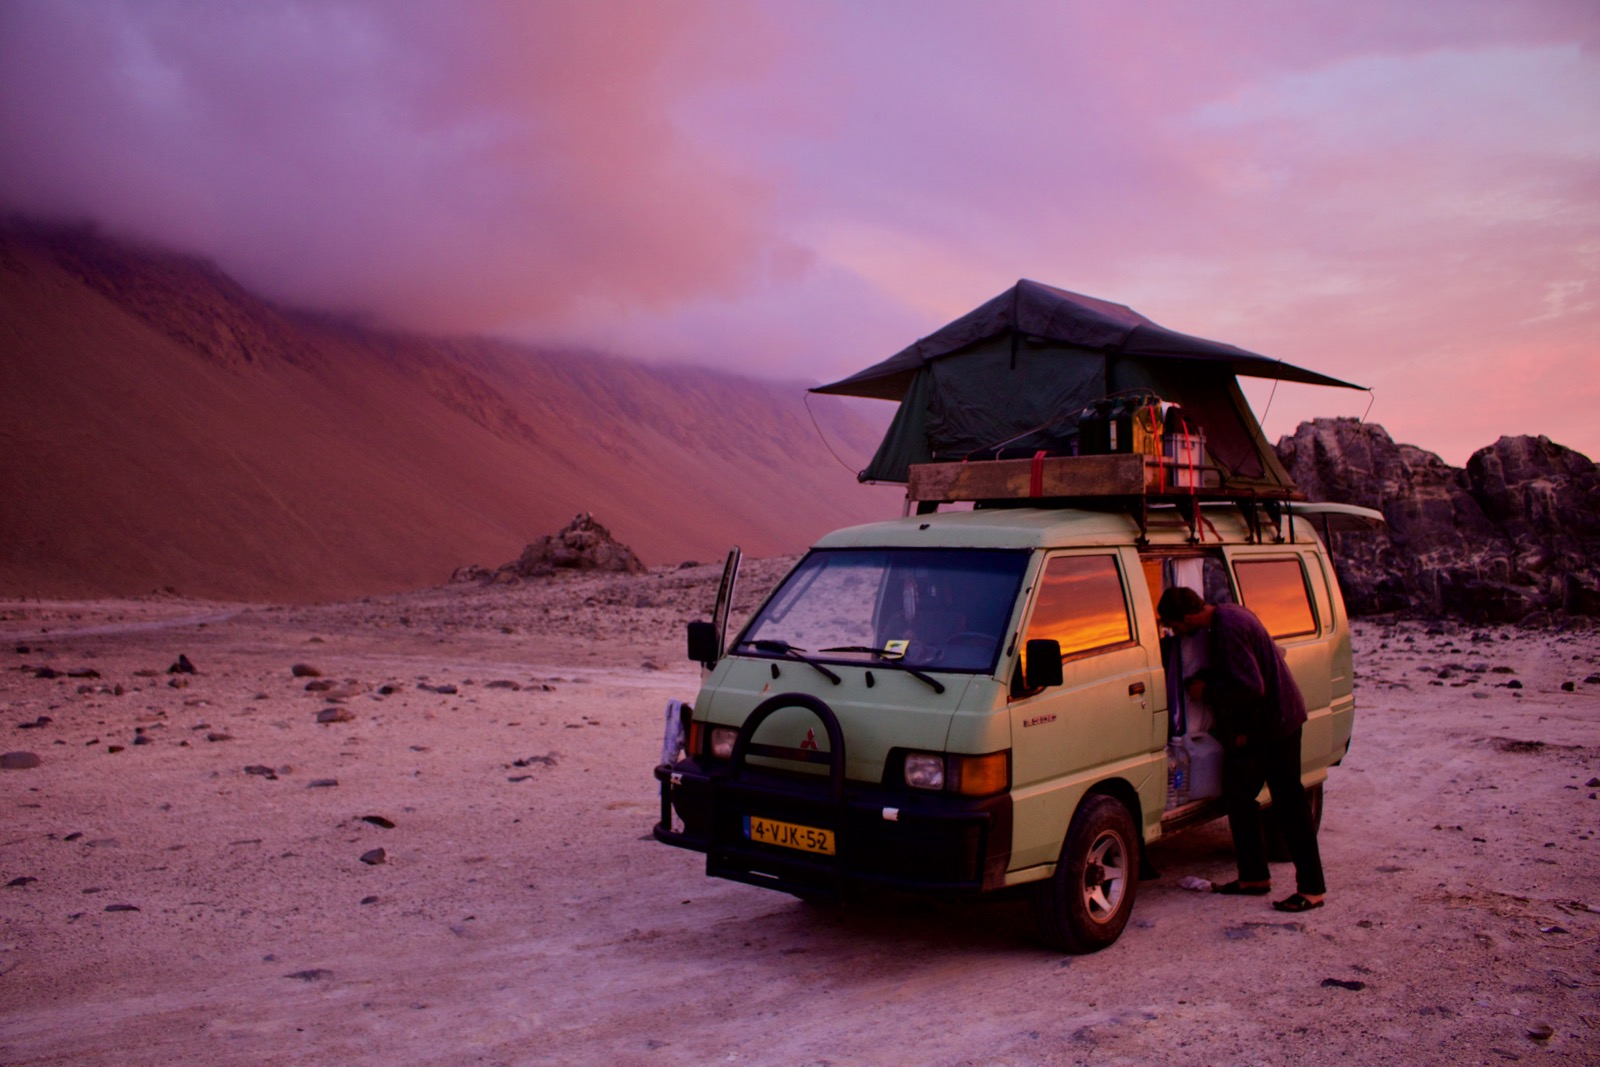 campervan conversion in-action shots - 6.jpg